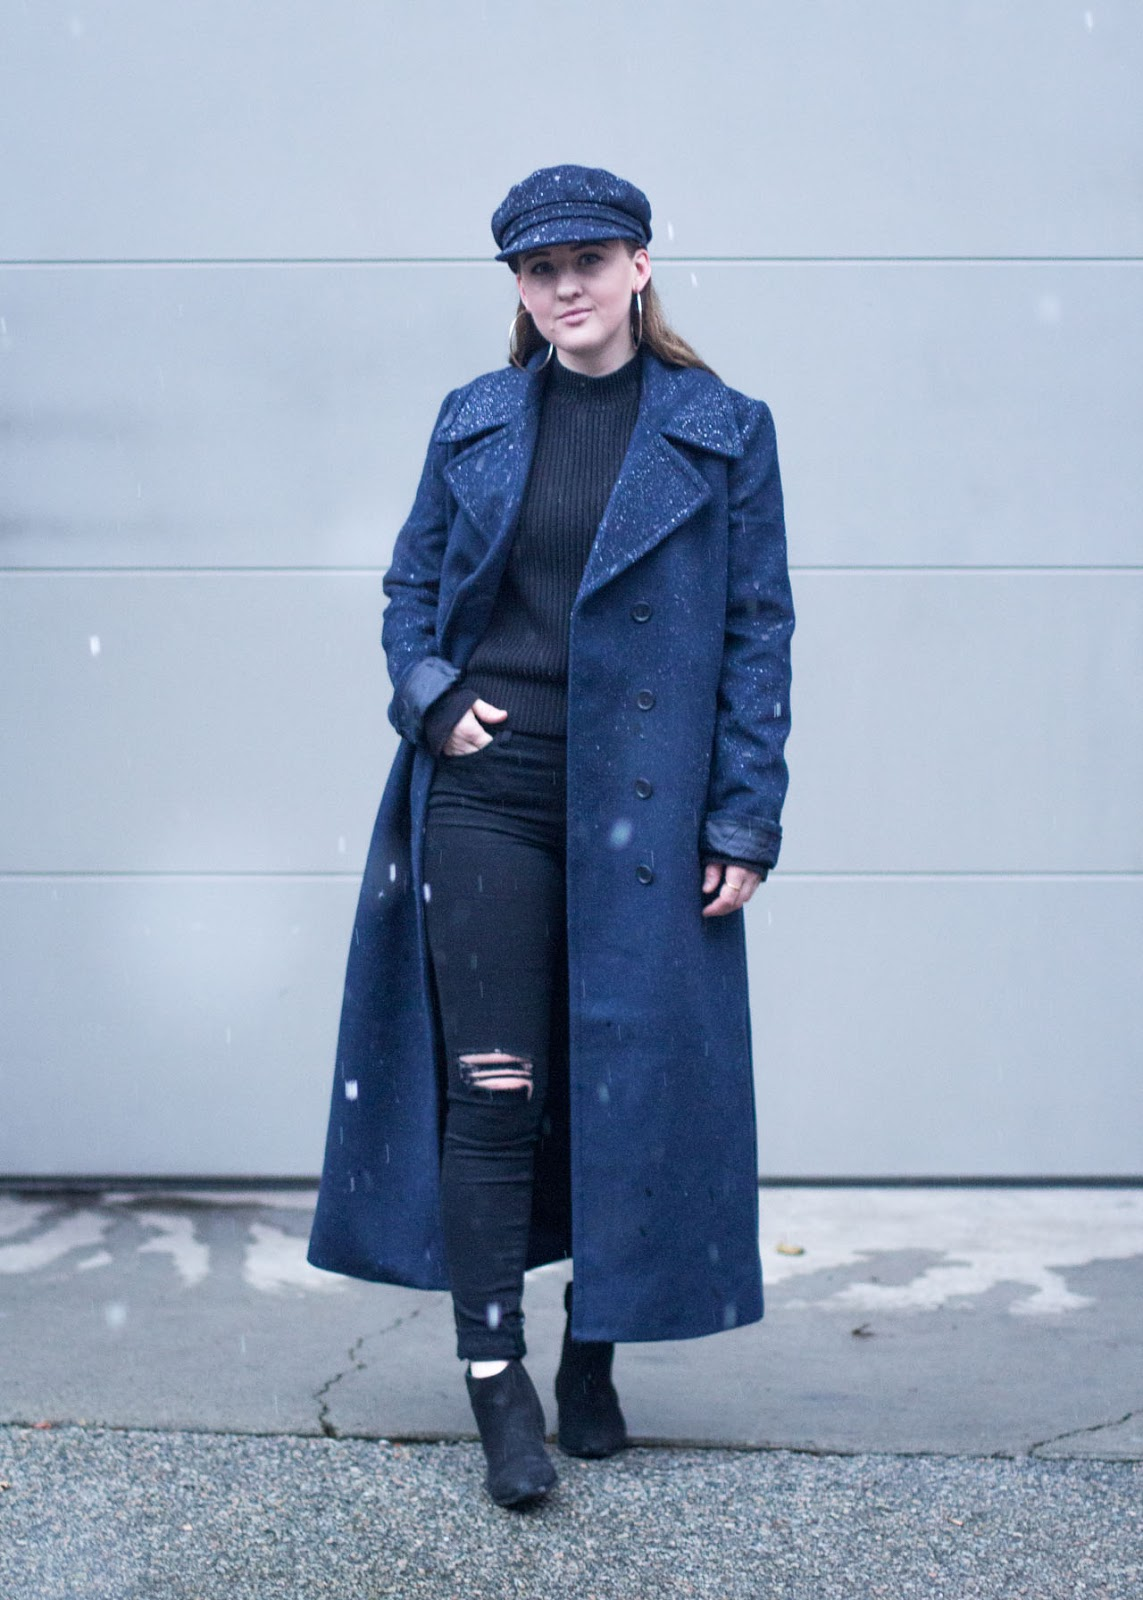 new Forever 21 coat / Louis Vuitton bag / Frame jeans - Winter style outfit